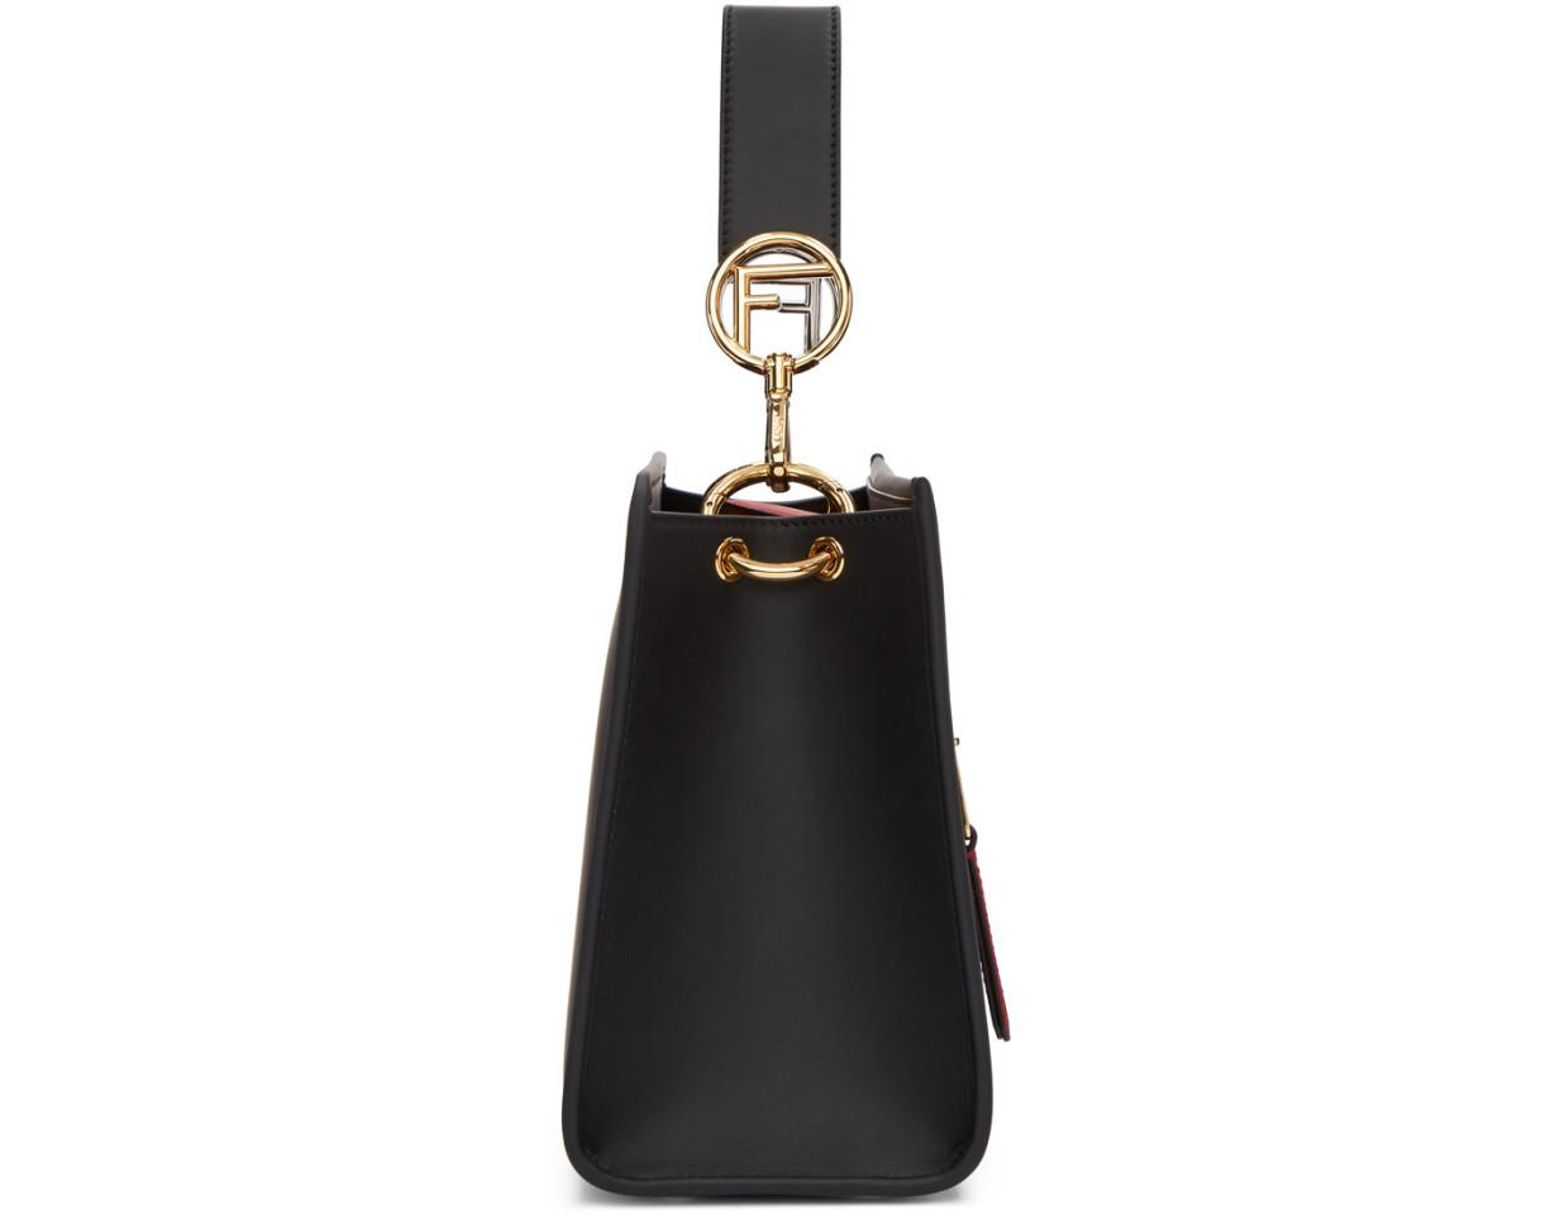 f43a4a2779 Fendi Black Small Forever Runaway Bag in Black - Save 36% - Lyst